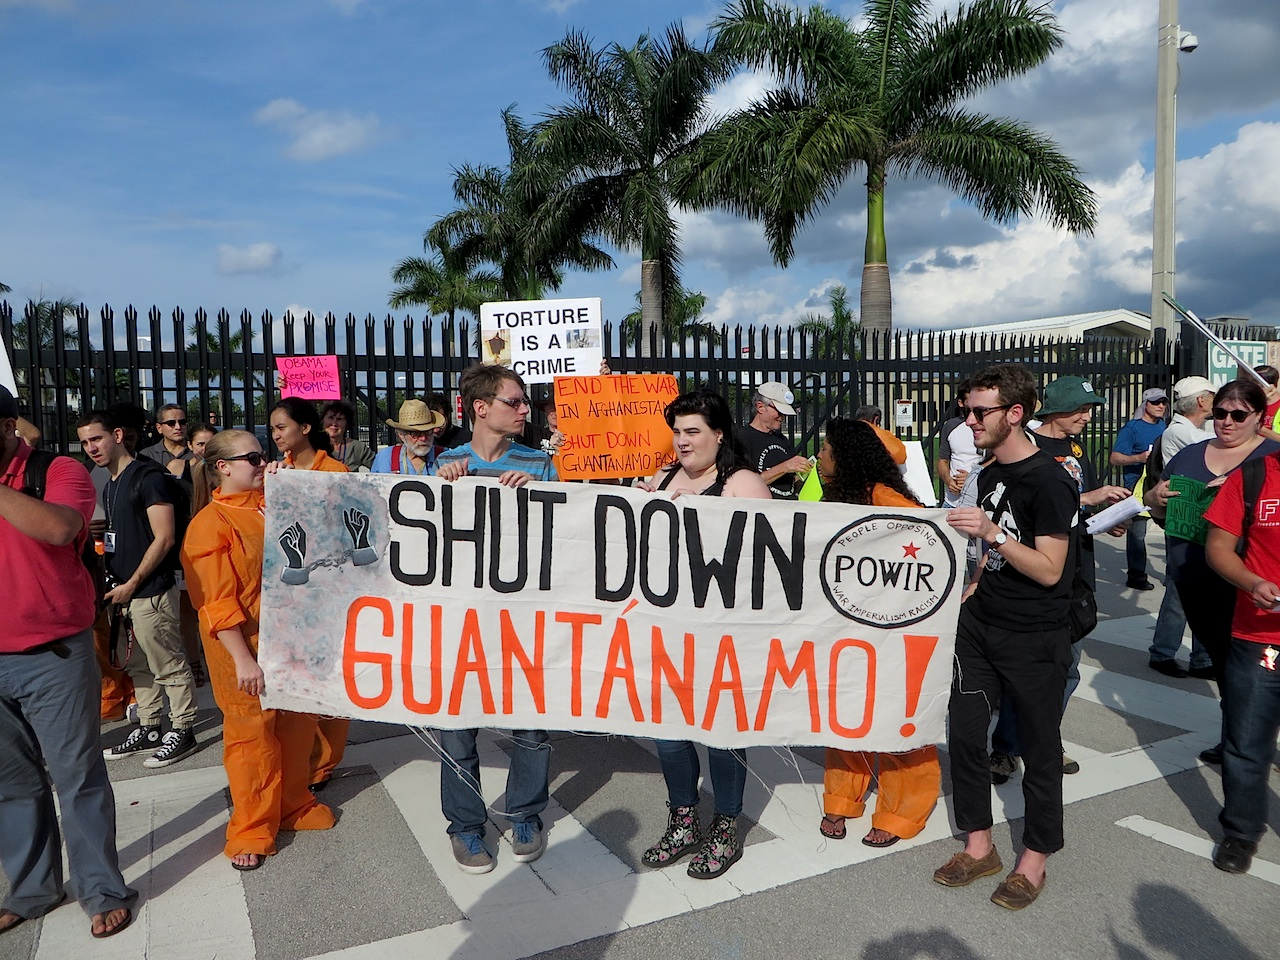 Campaigners in Florida call for the closure of Guantanamo outside the gates of US Southern Command, January 9, 2016 (Photo: Andy Worthington).